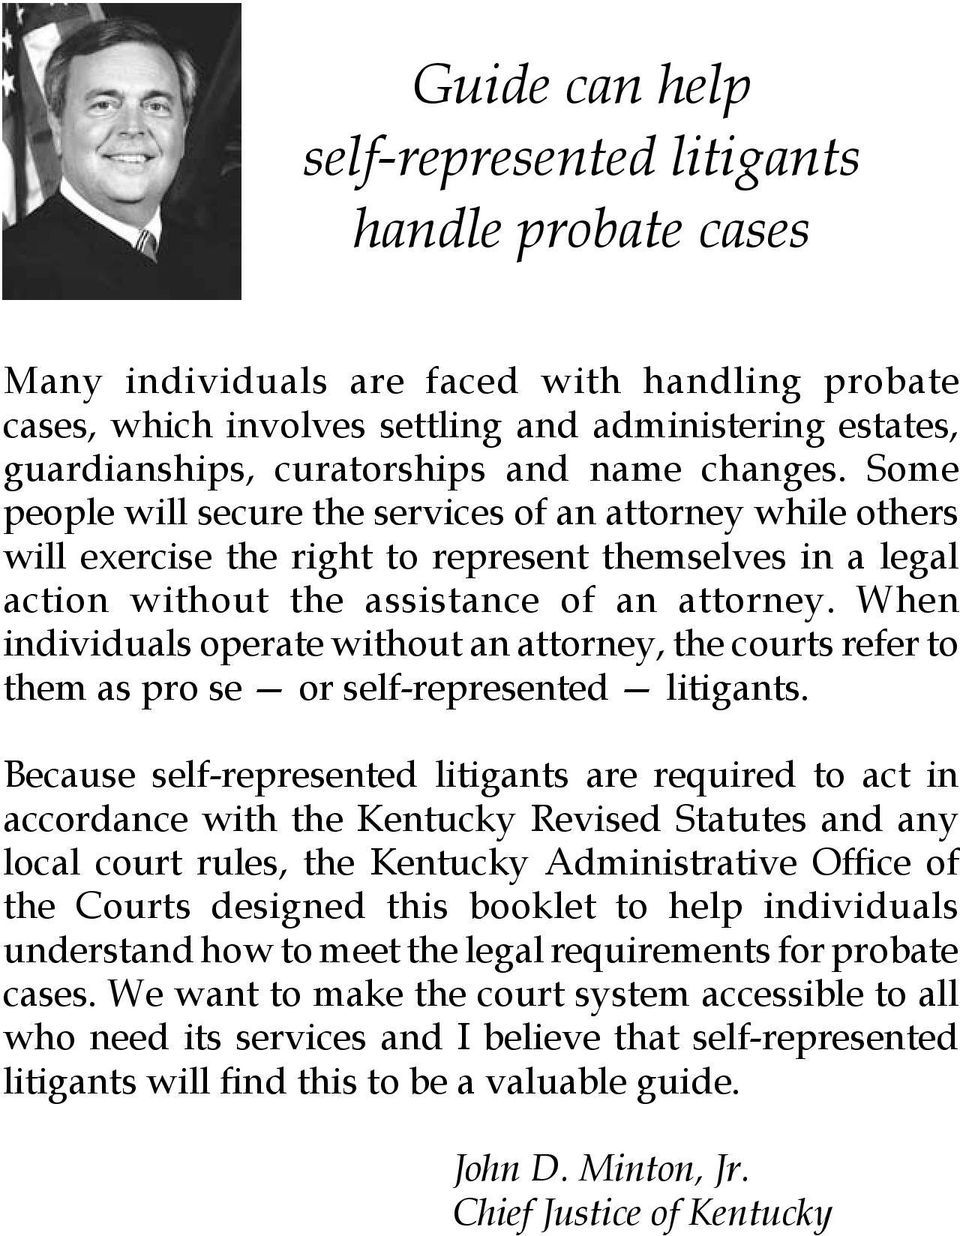 When individuals operate without an attorney, the courts refer to them as pro se or self-represented litigants.